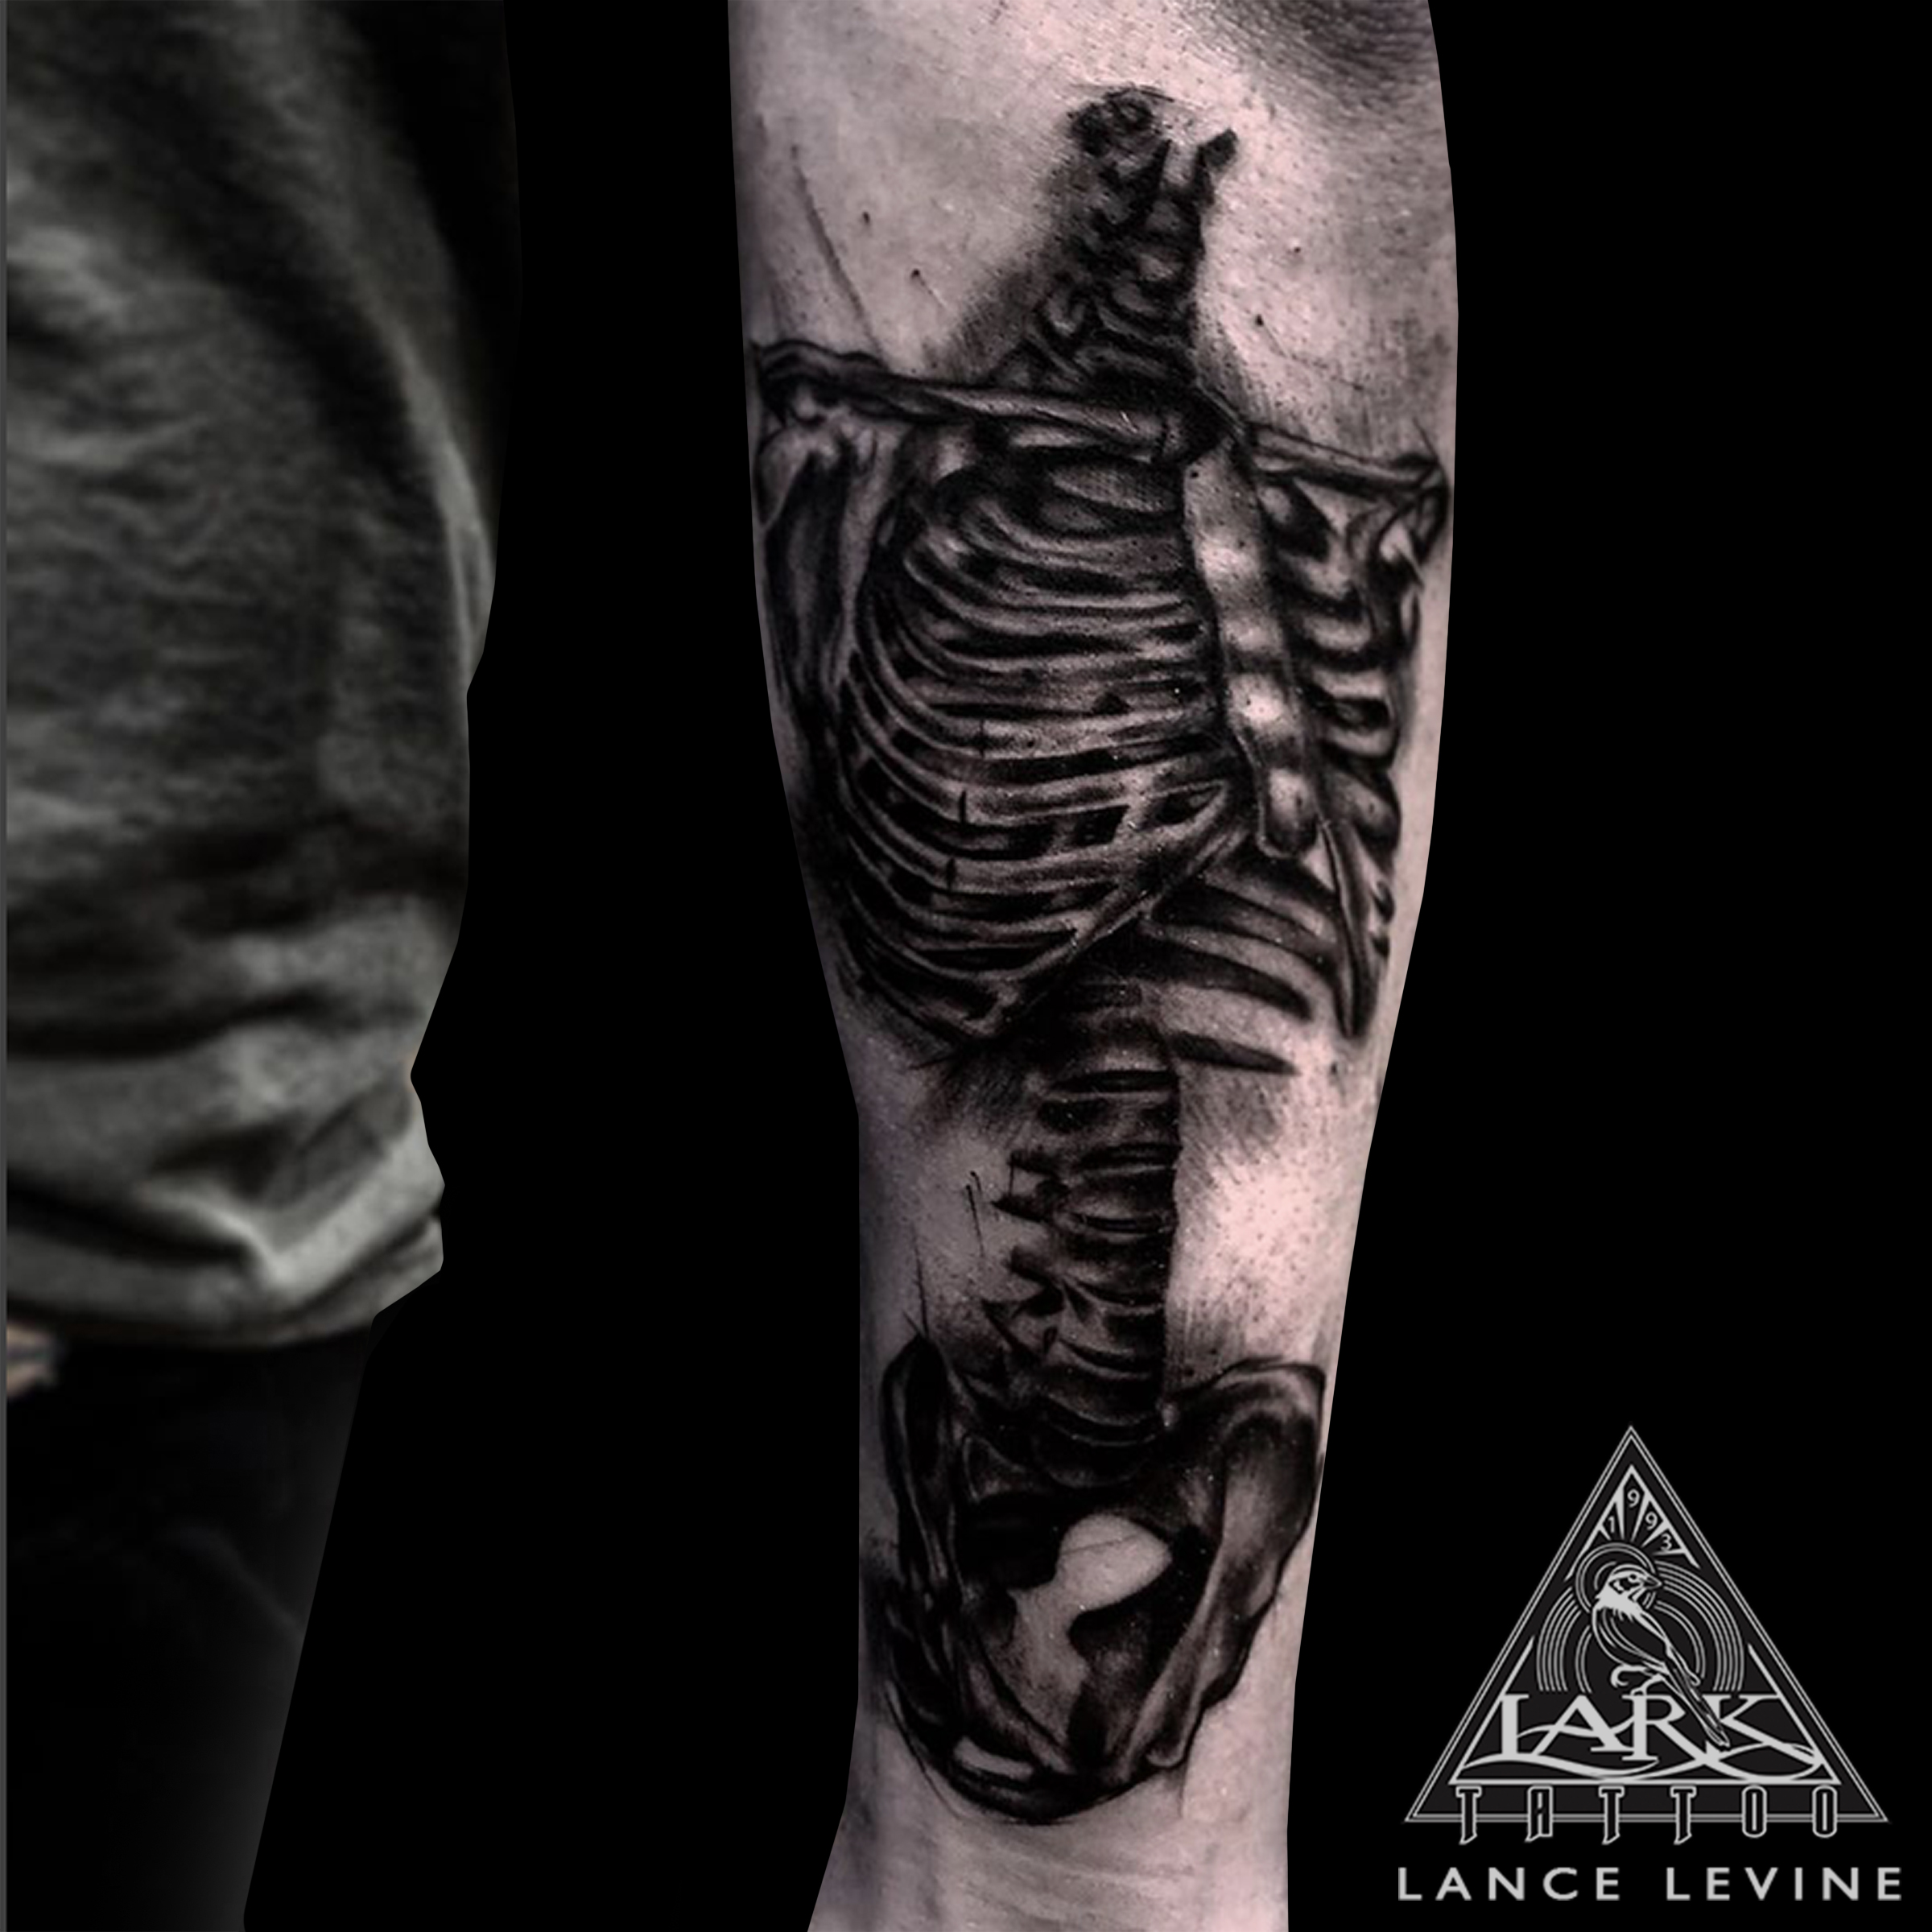 LarkTattoo, Tattoo, Tattoos, LanceLevine, LanceLevineTattoo, LanceLevineLarkTattoo, Anatomy, AnatomyTattoo, BNG, BNGTattoo, BlackAndGray, BlackAndGrayTattoo, BlackAndGrey, BlackAndGreyTattoo, Blackwork, BlackworkTattoo, Realistic, RealisticTattoo, Realism, RealismTattoo, Skeleton, SkeletonTattoo, Medical, MedicalTattoo, MedicalArt, MedicalArtTattoo, Anatomical, AnatomicalTattoo, Science, ScienceTattoo, SolidInk, SolidInkTattoo, Bishopwand, BishopwandTattoo, TattooArtist, Tattoist, Tattooer, LongIslandTattooArtist, LongIslandTattooer, LongIslandTattoo, TattooOfTheDay, Tat, Tats, Tatts, Tatted, Inked, Ink, TattooInk, AmazingInk, AmazingTattoo, BodyArt, LarkTattooWestbury, Westbury, LongIsland, NY, NewYork, USA, Art, Tattedup, InkedUp, LarkTattoos